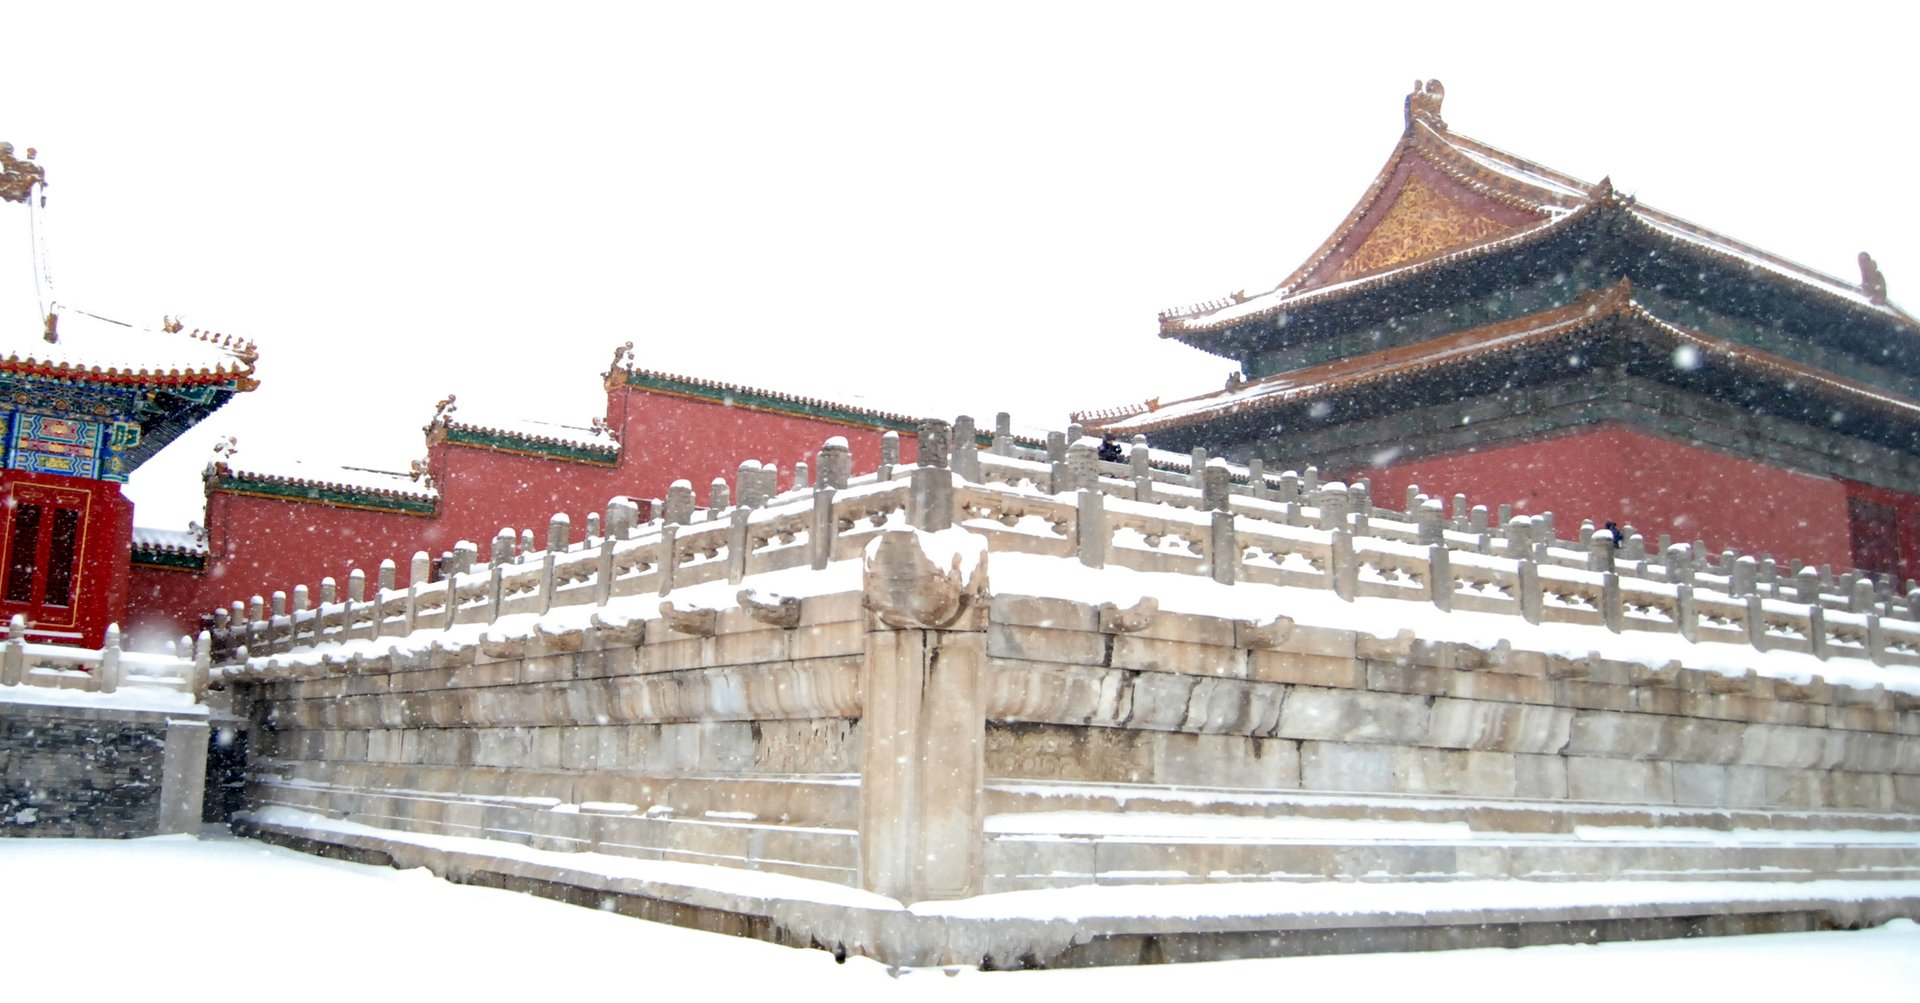 The Forbidden City in January 2020